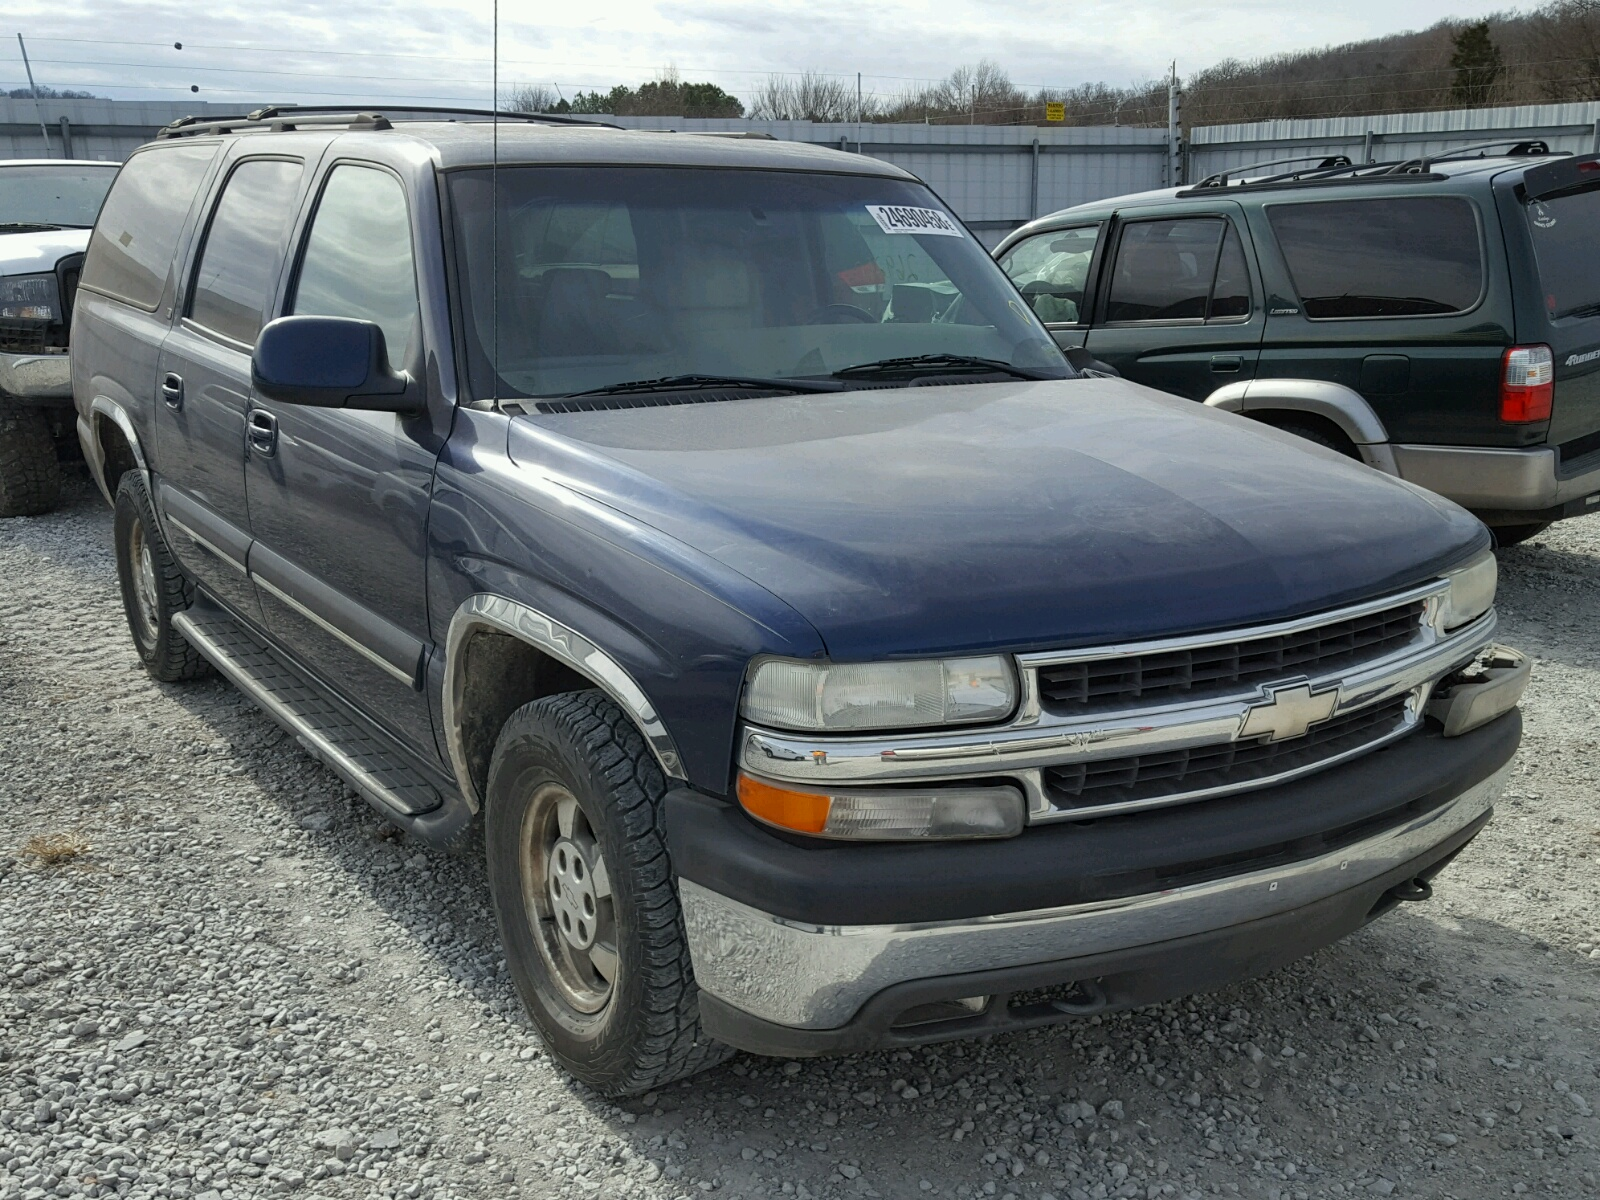 Salvage Car Auctions In Kansas City